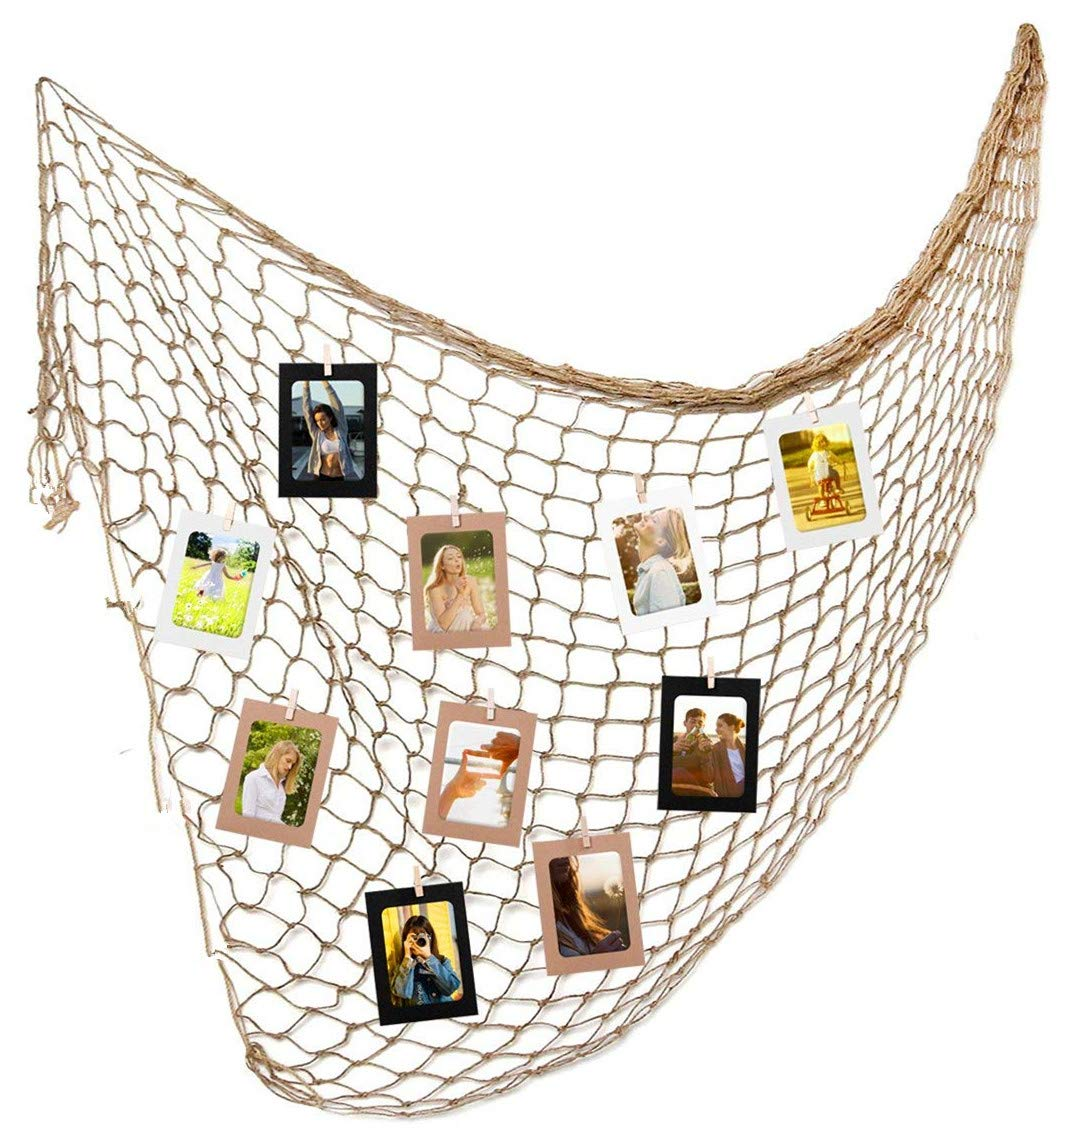 tensky Photo Hanging Display with 30 Clip Fishing Net Wall Decor - Picture Frames & Prints Multi Photos Organizer & Collage Artworks - Nautical Decorative Dorm Bedroom Christmas Decorations